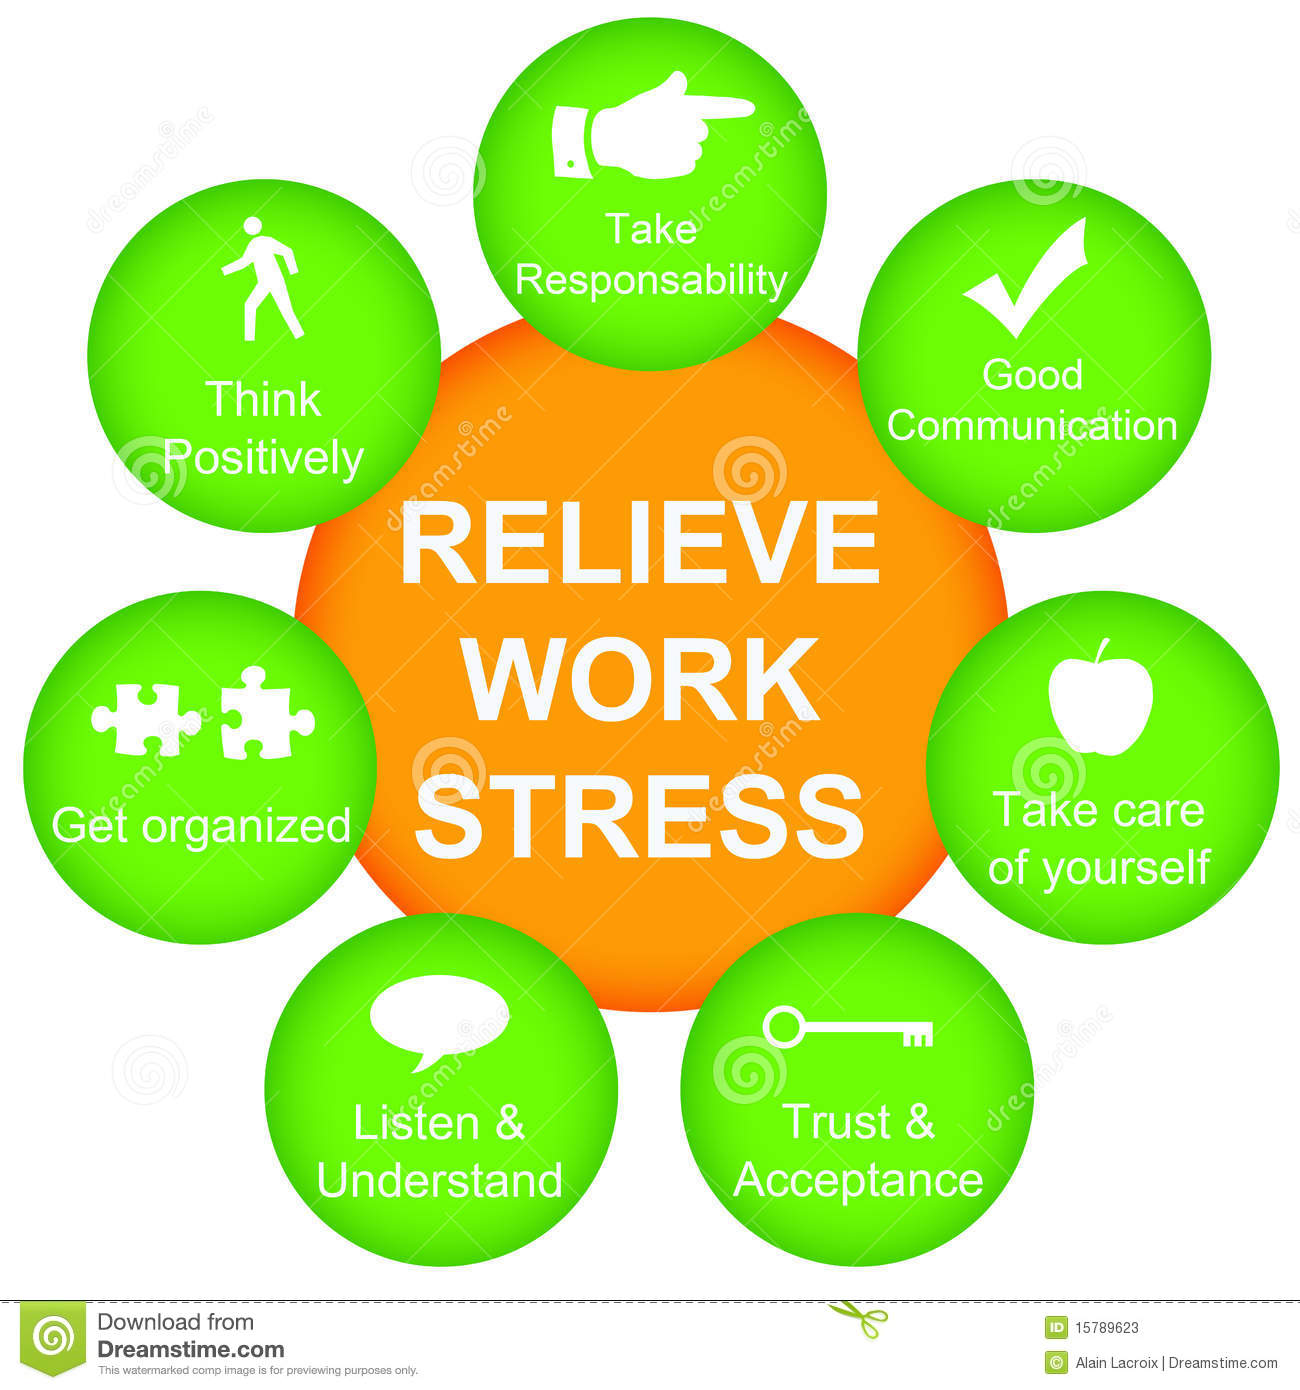 Relieving Work Stress By Focusing On Certain Topics